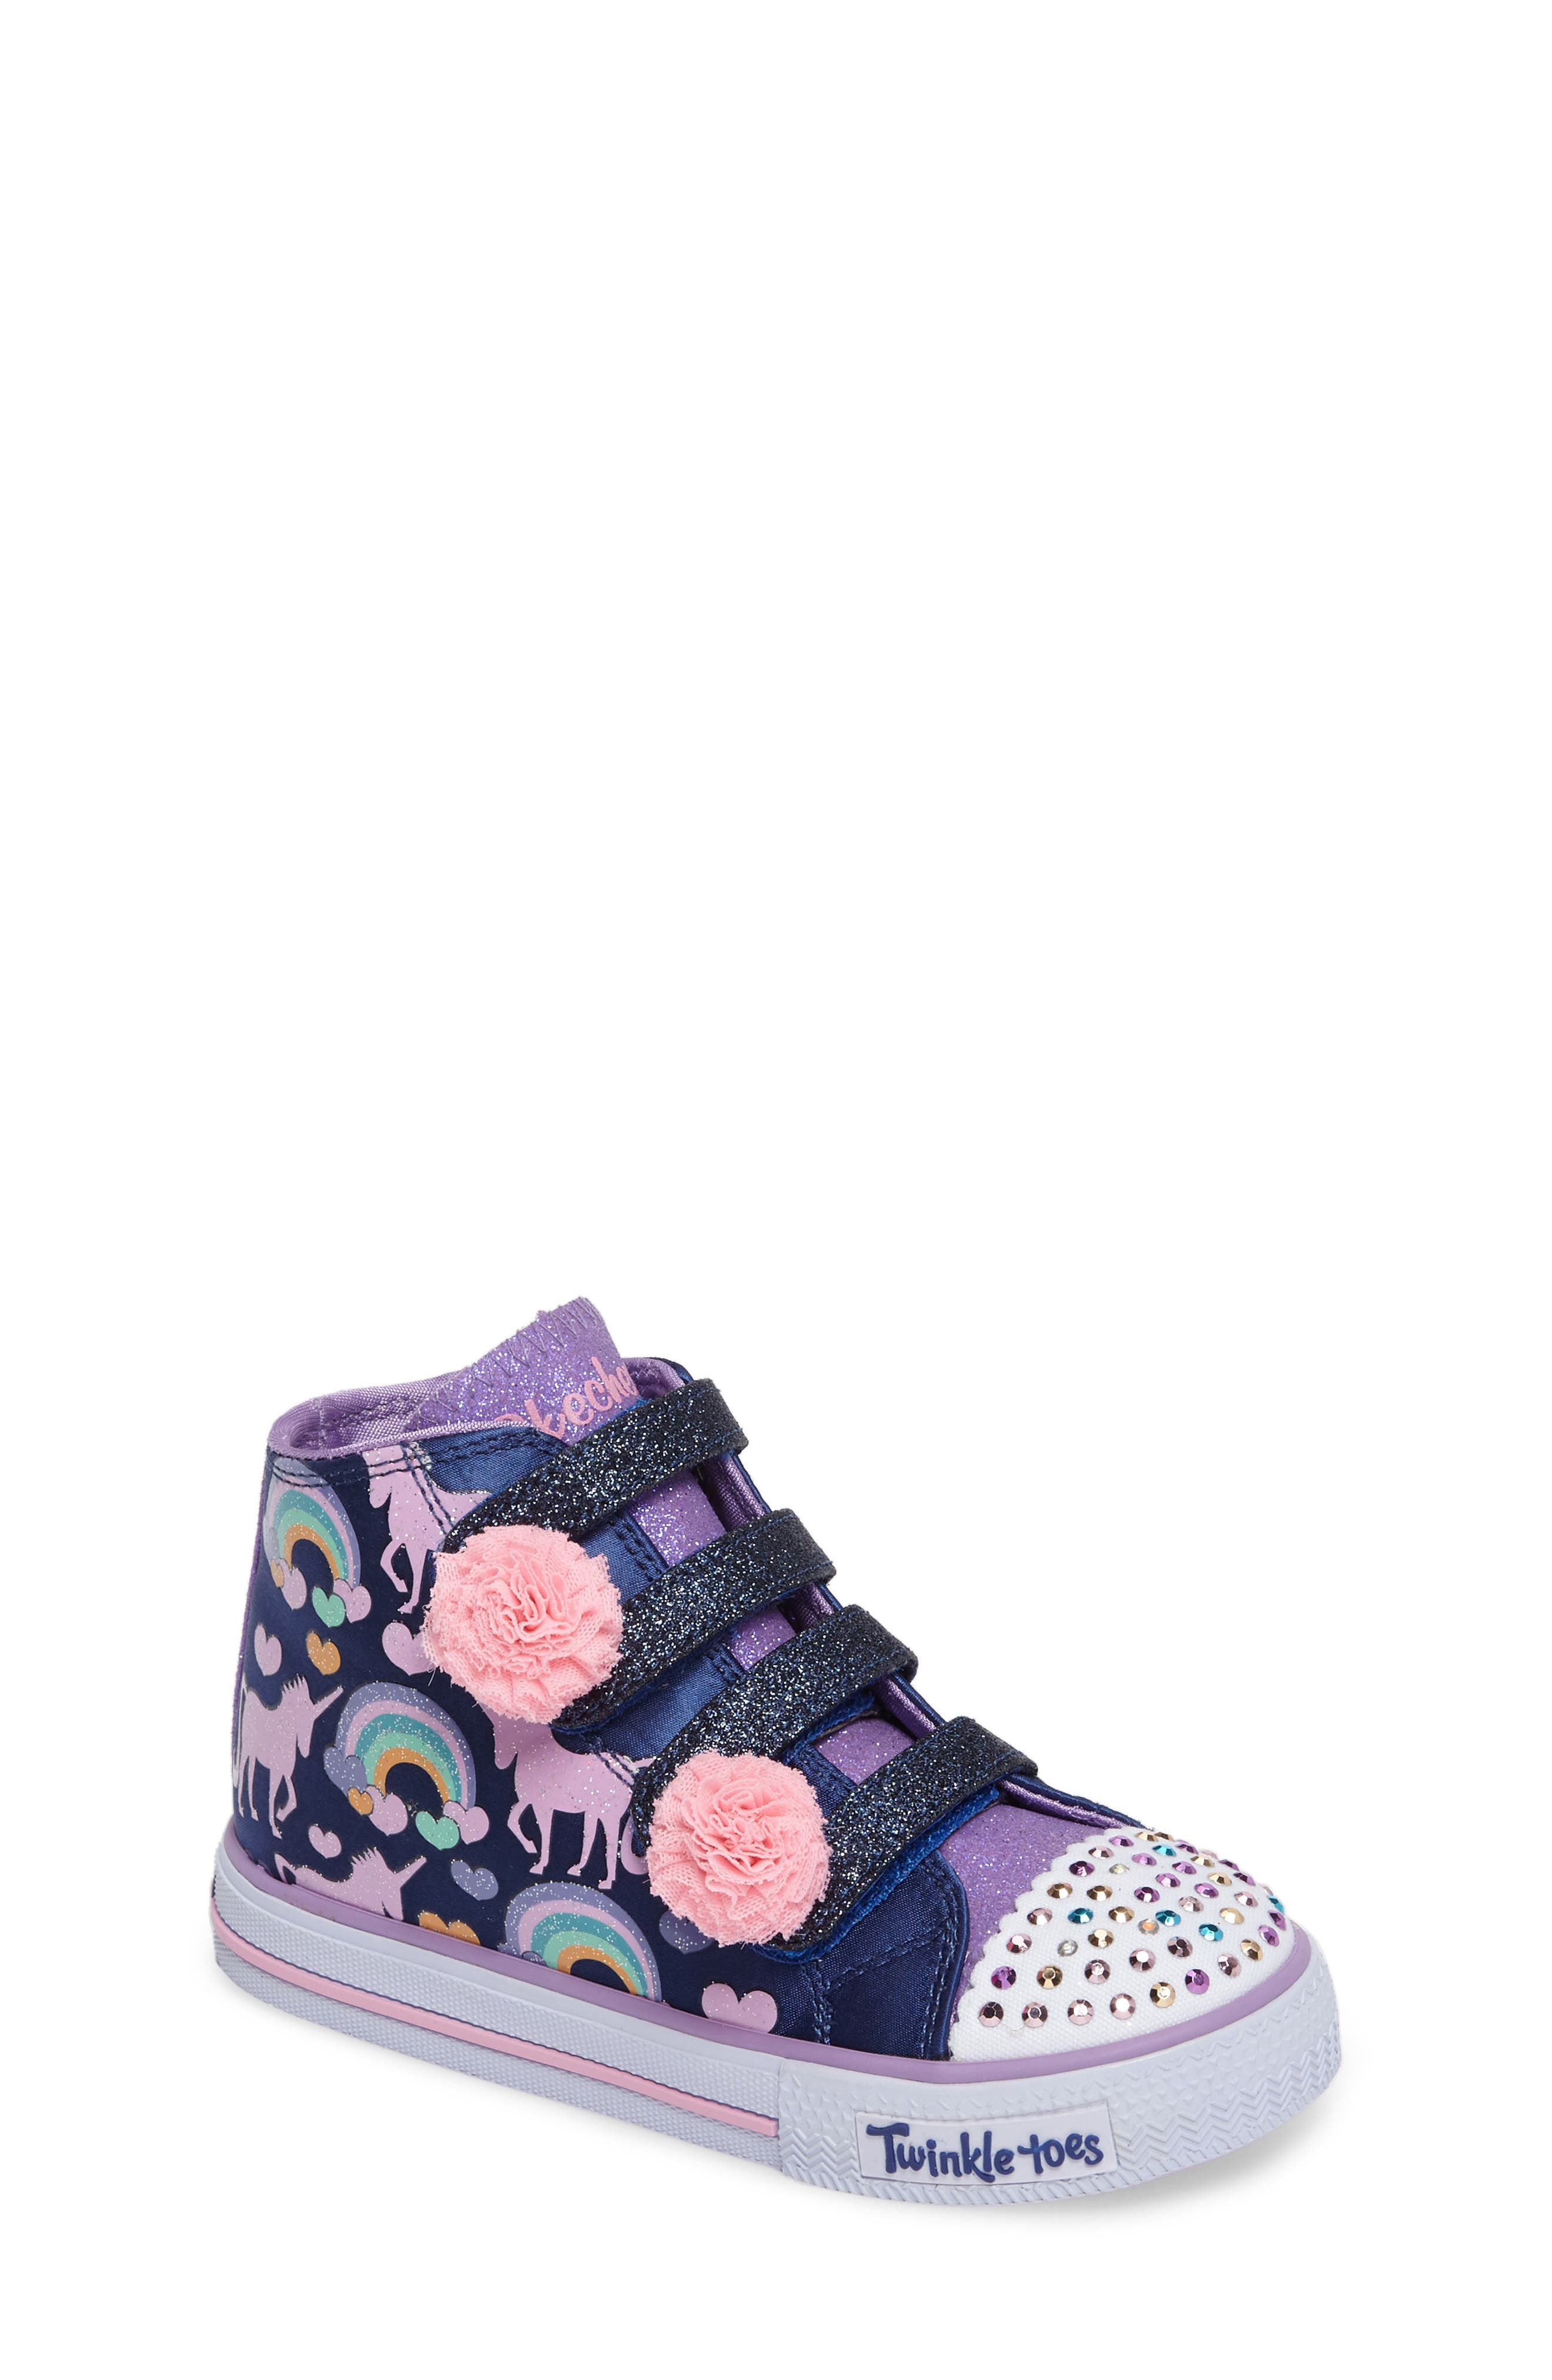 SKECHERS Twinkle Toes Shuffles High Top Sneaker (Walker & Toddler)